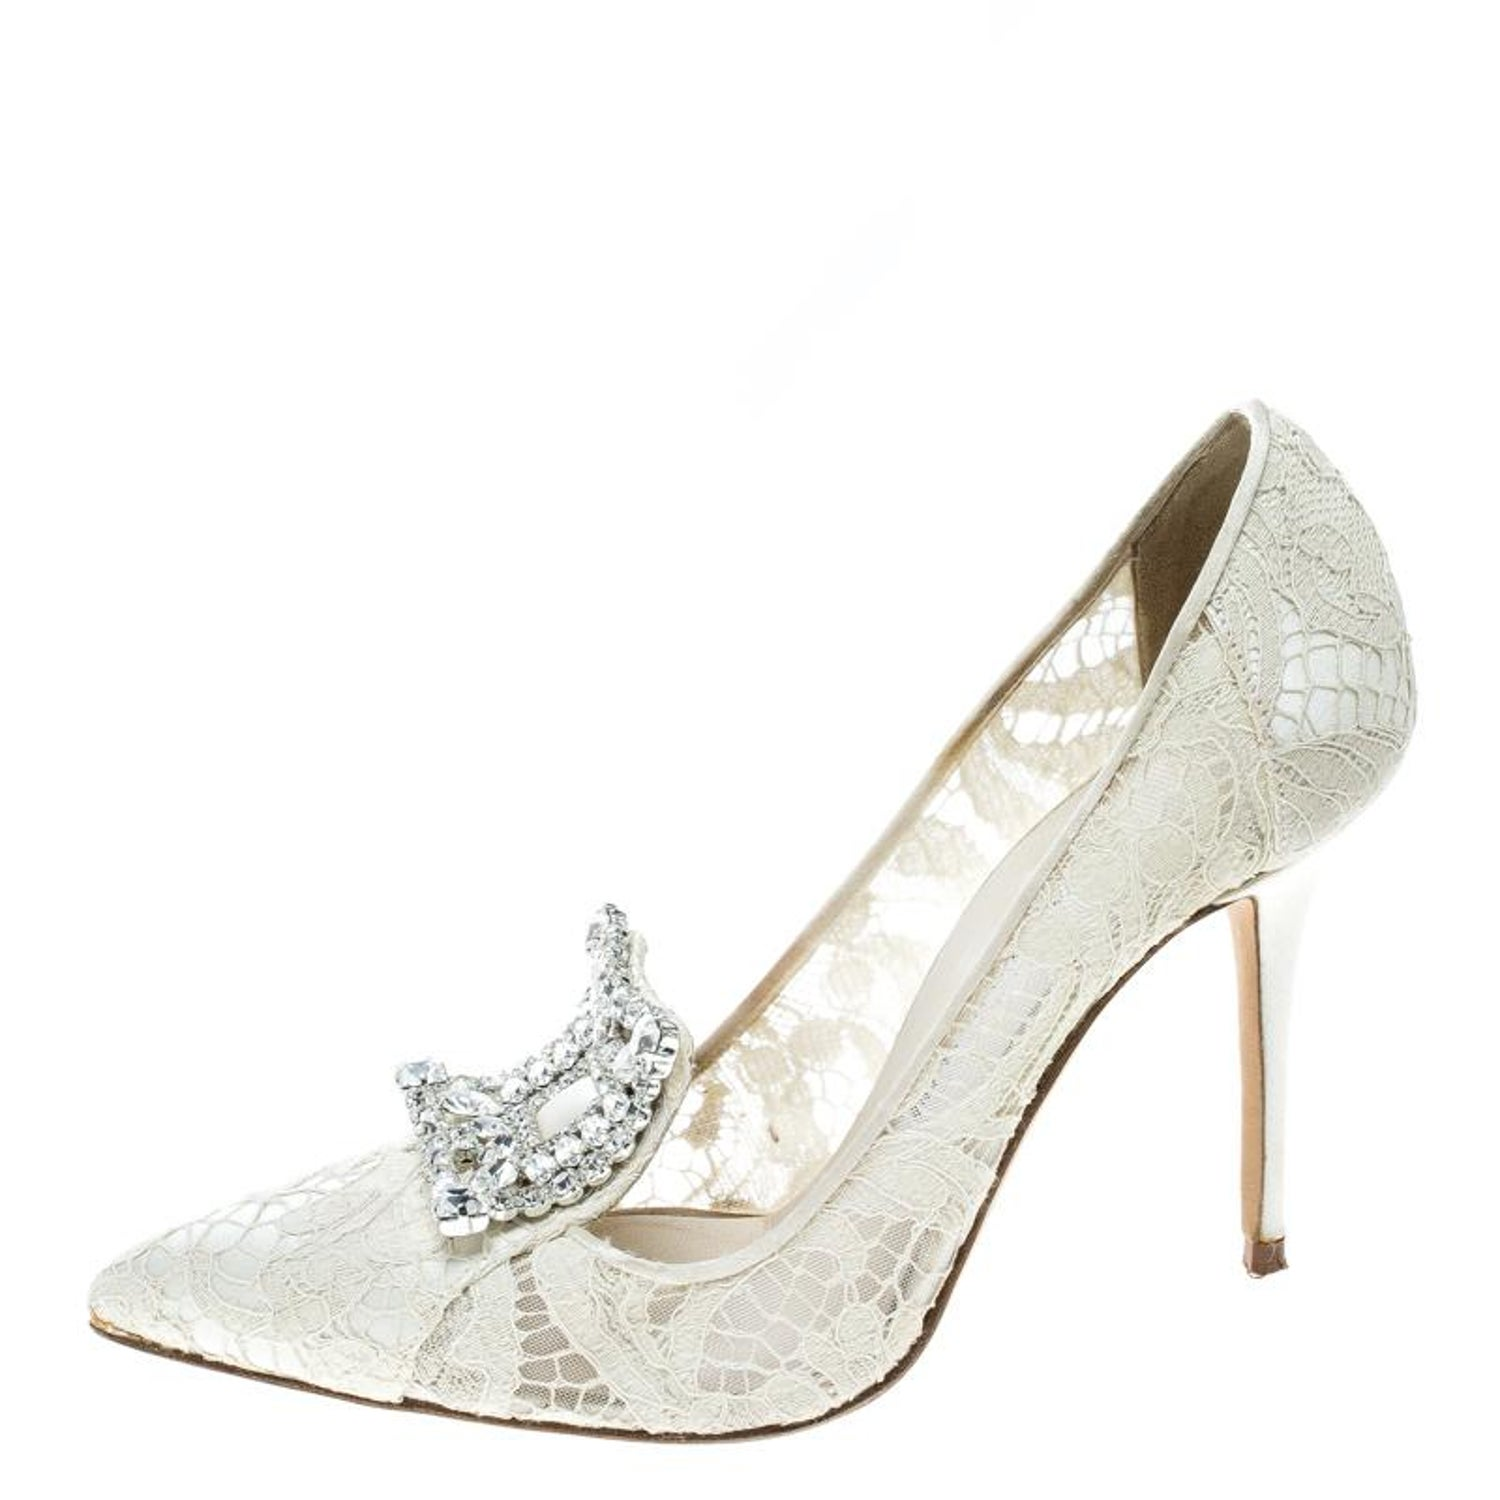 3625f2b2214f Manolo Blahnik Off White Lace and Satin Borlak Crystal Embellished Pumps  Size 36 For Sale at 1stdibs